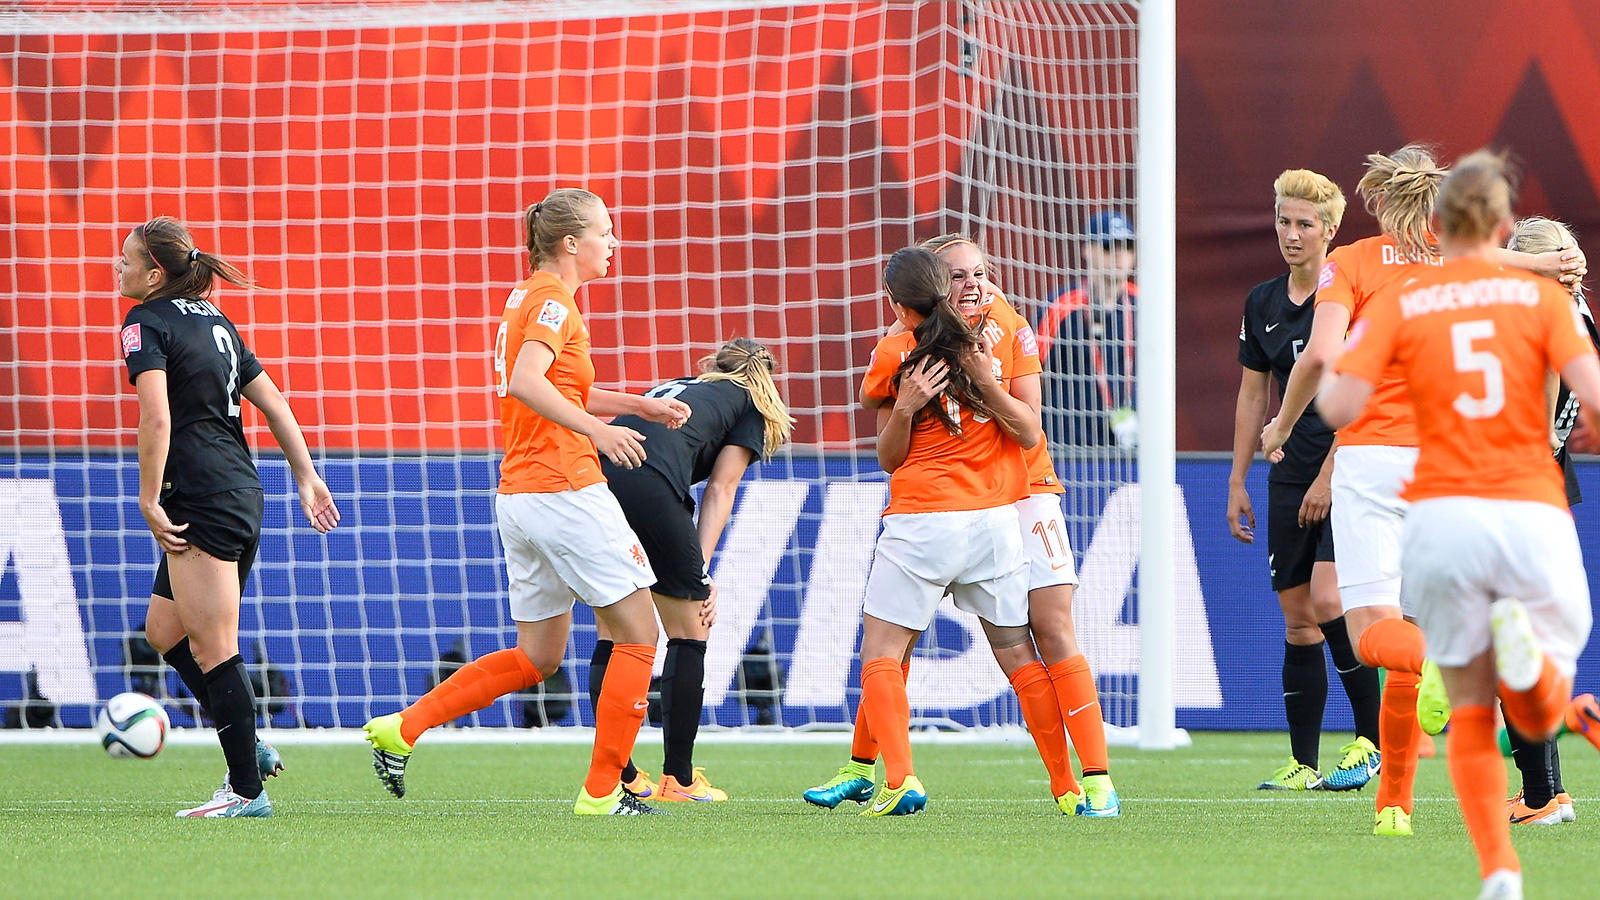 Lieke Martens is mobbed by her teammates after lacing a 20-yard rocket for the Netherlands' first Women's World Cup goal in the nation's debut match in the competition.